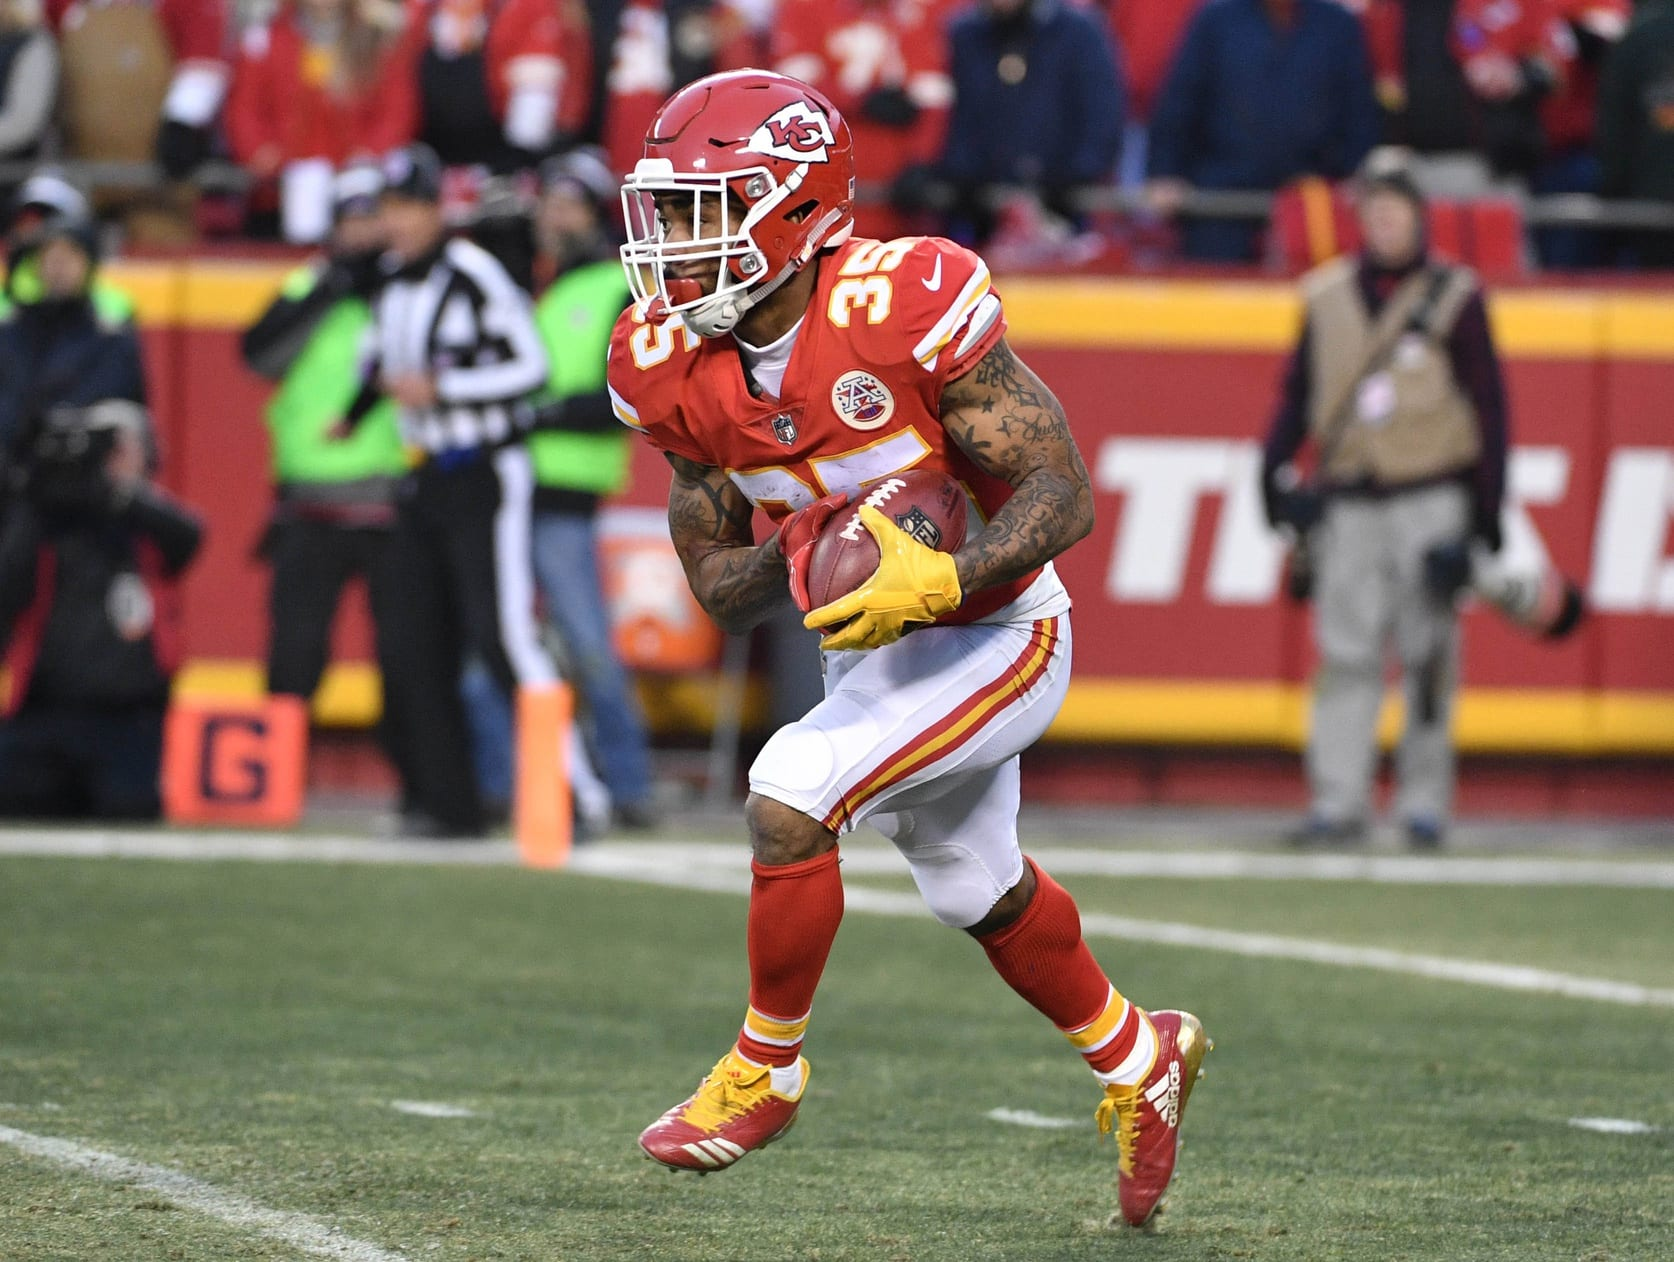 Jets Release RB Charcandrick West | NFLTradeRumors.co